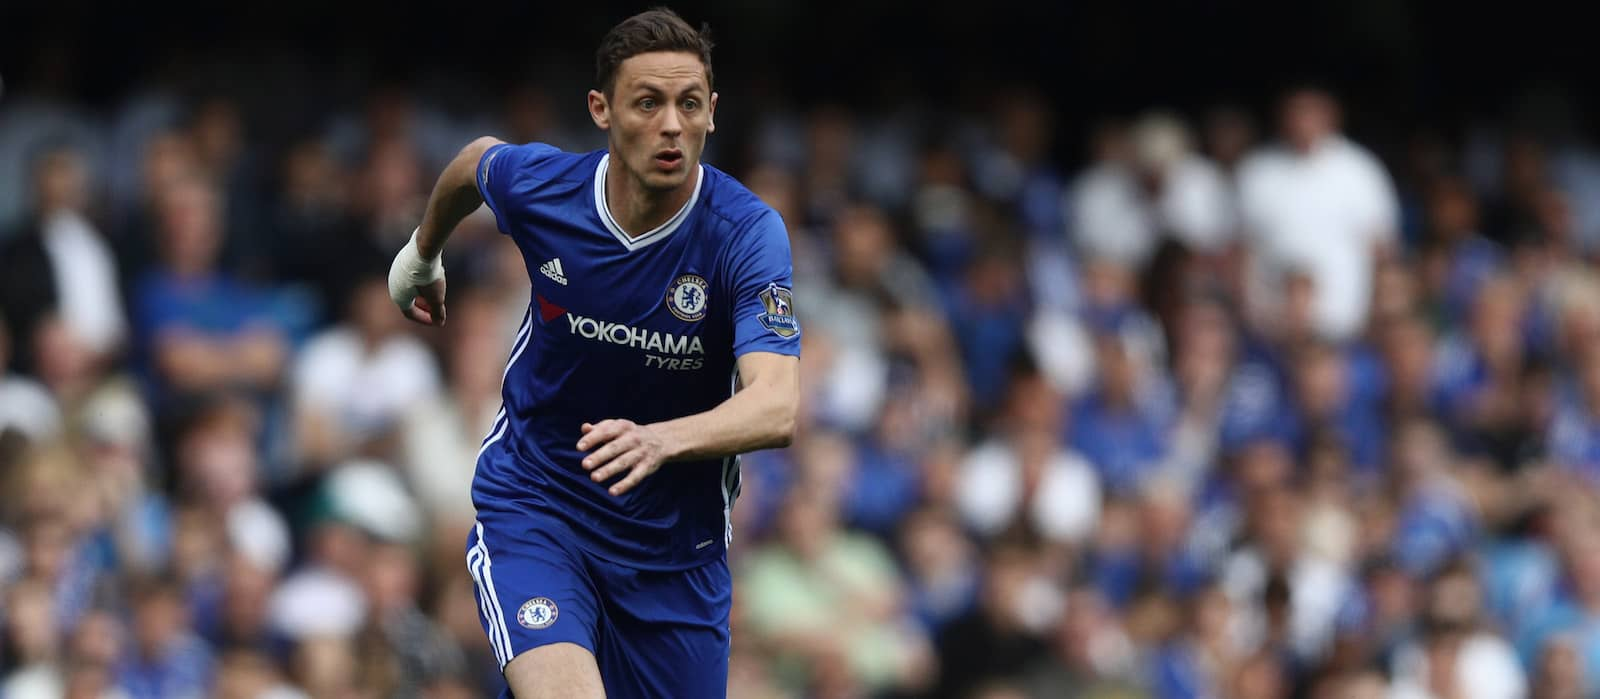 Chelsea will not sell Nemanja Matic to Manchester United this summer – report